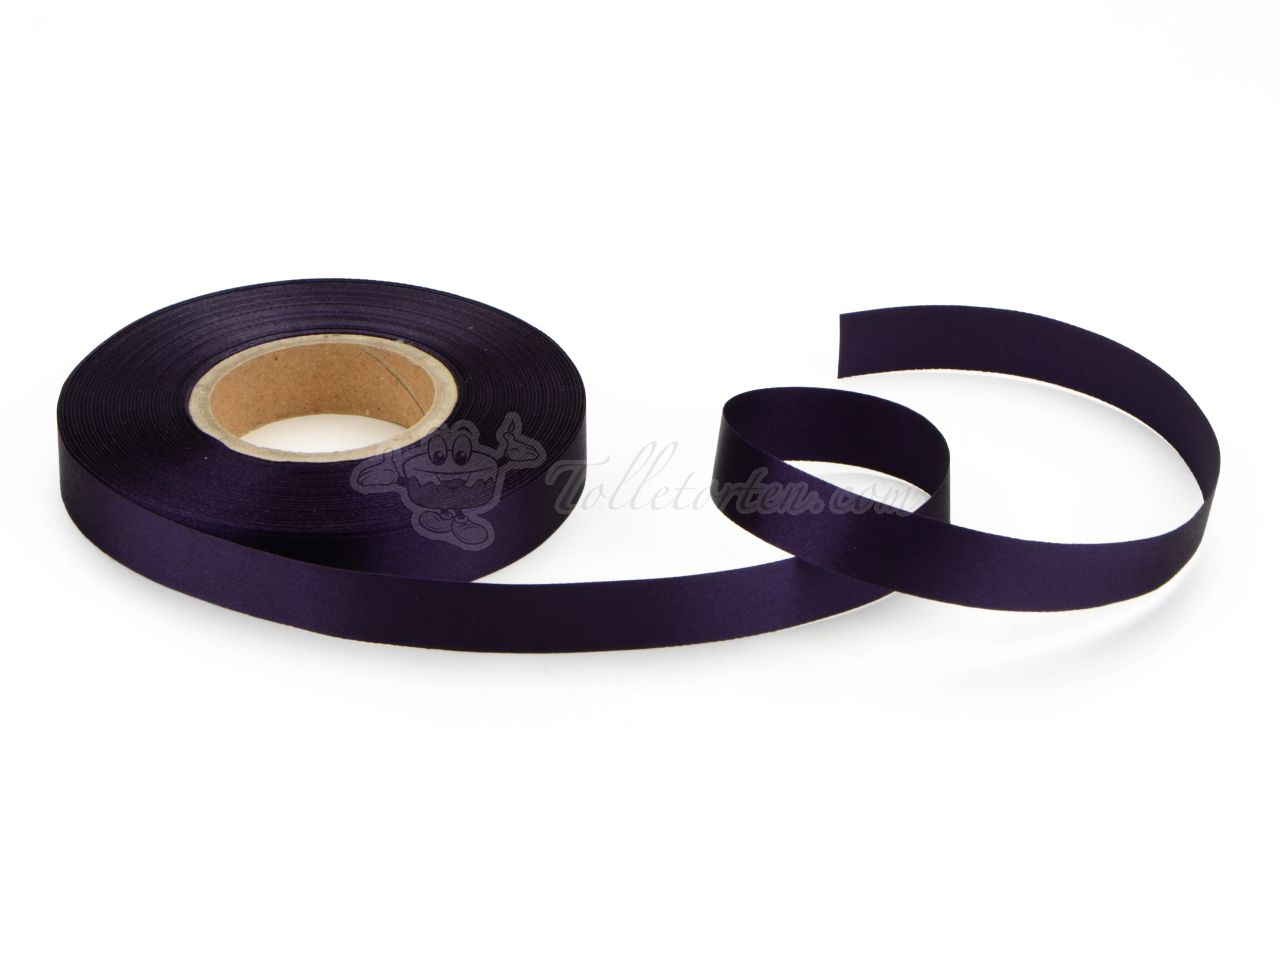 Satinband violett 14mm, 30 Meter